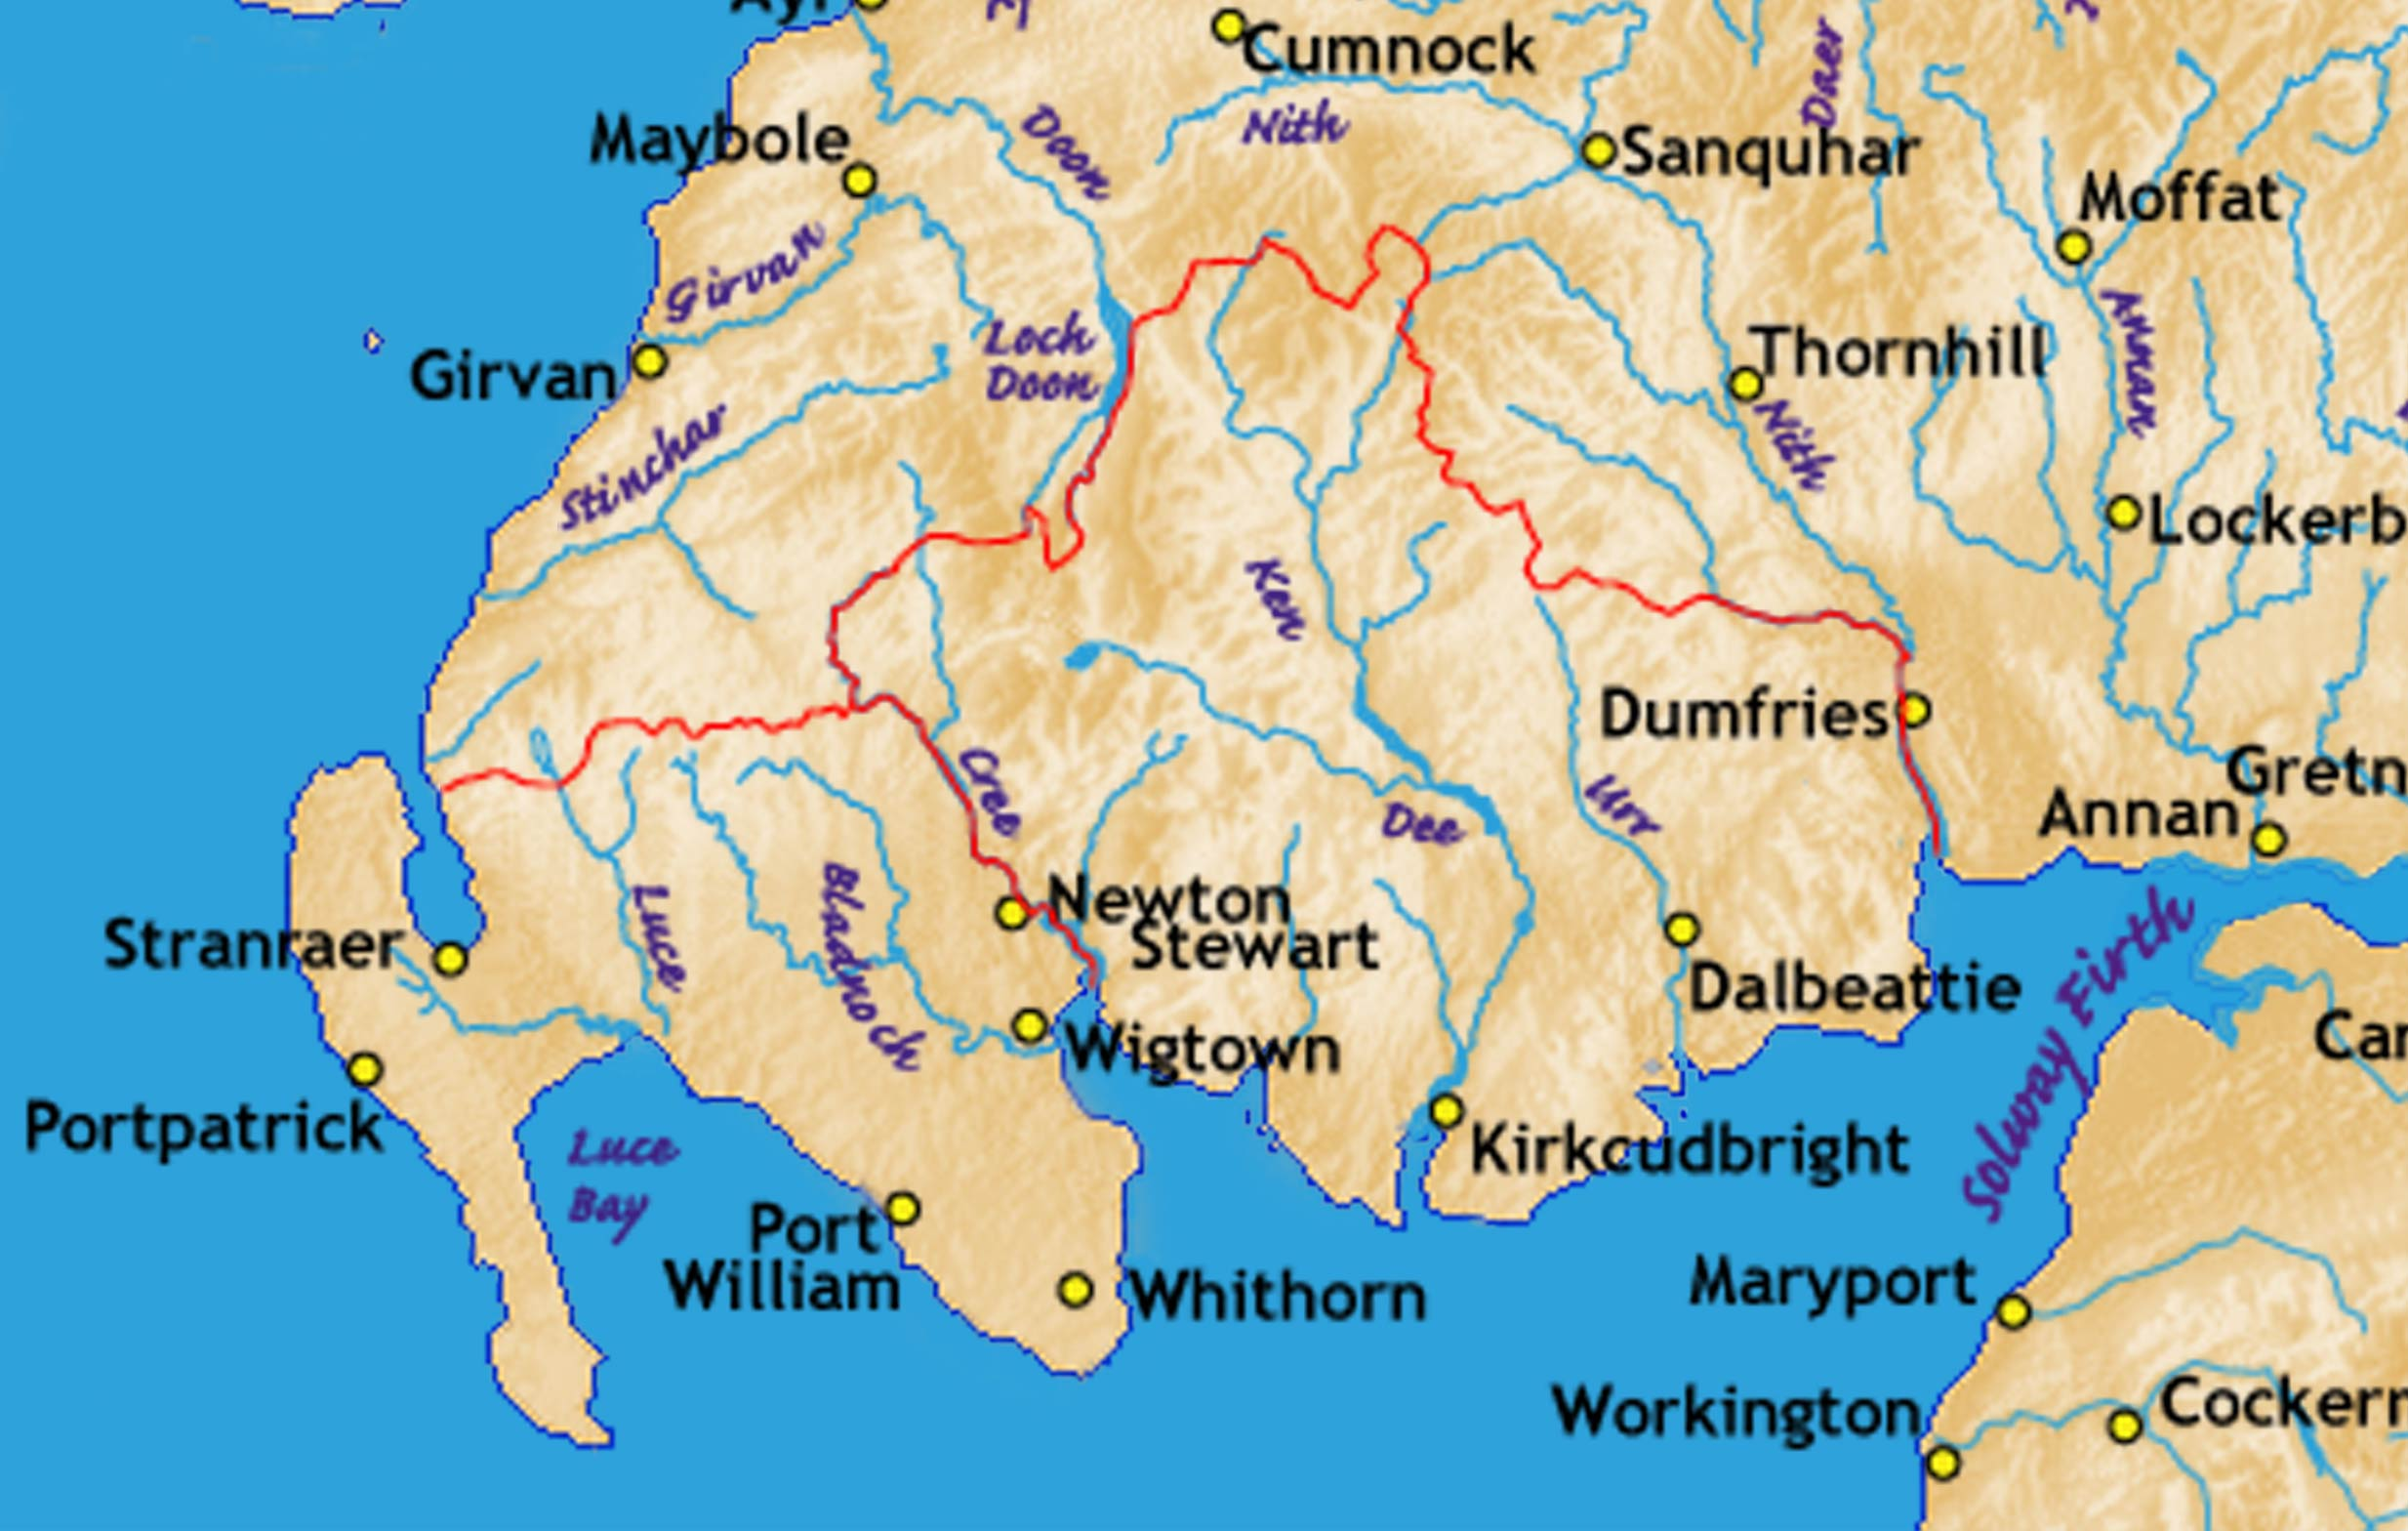 Whithorn in Galloway